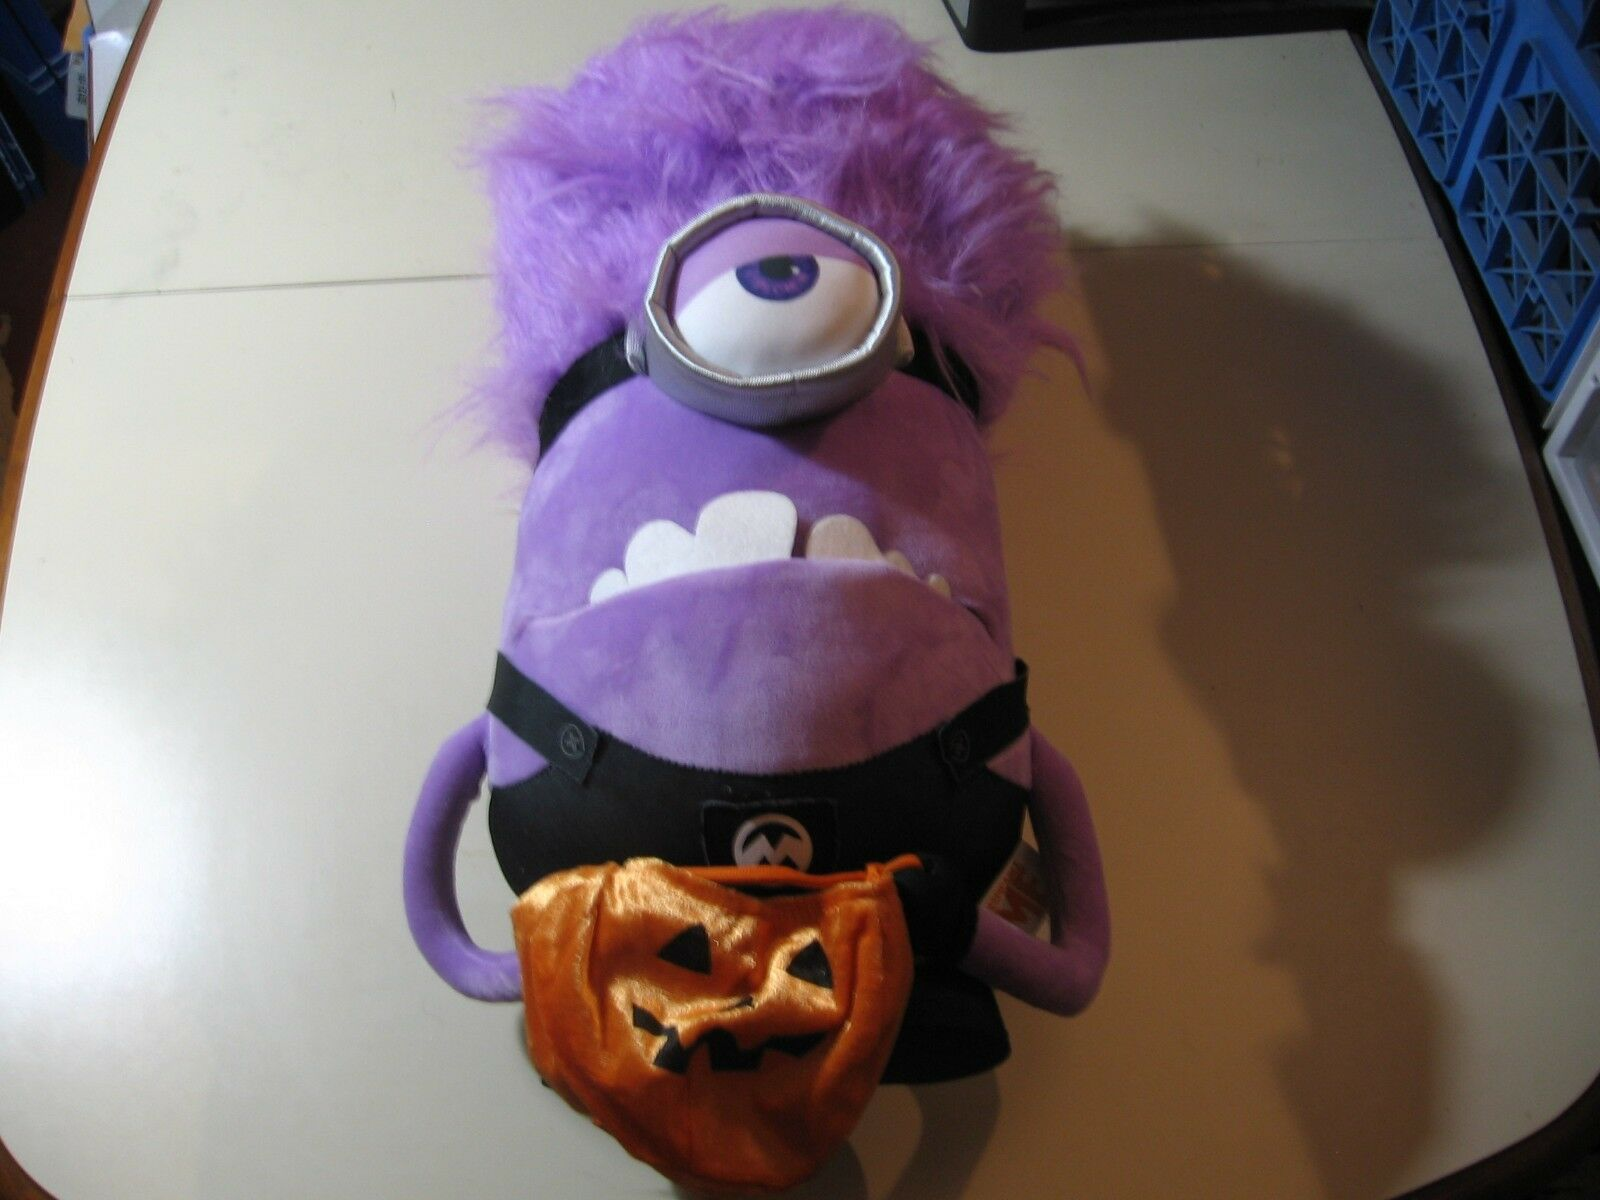 21  plush jumbo Evil viola Minion doll, from Despicable Me, good condition